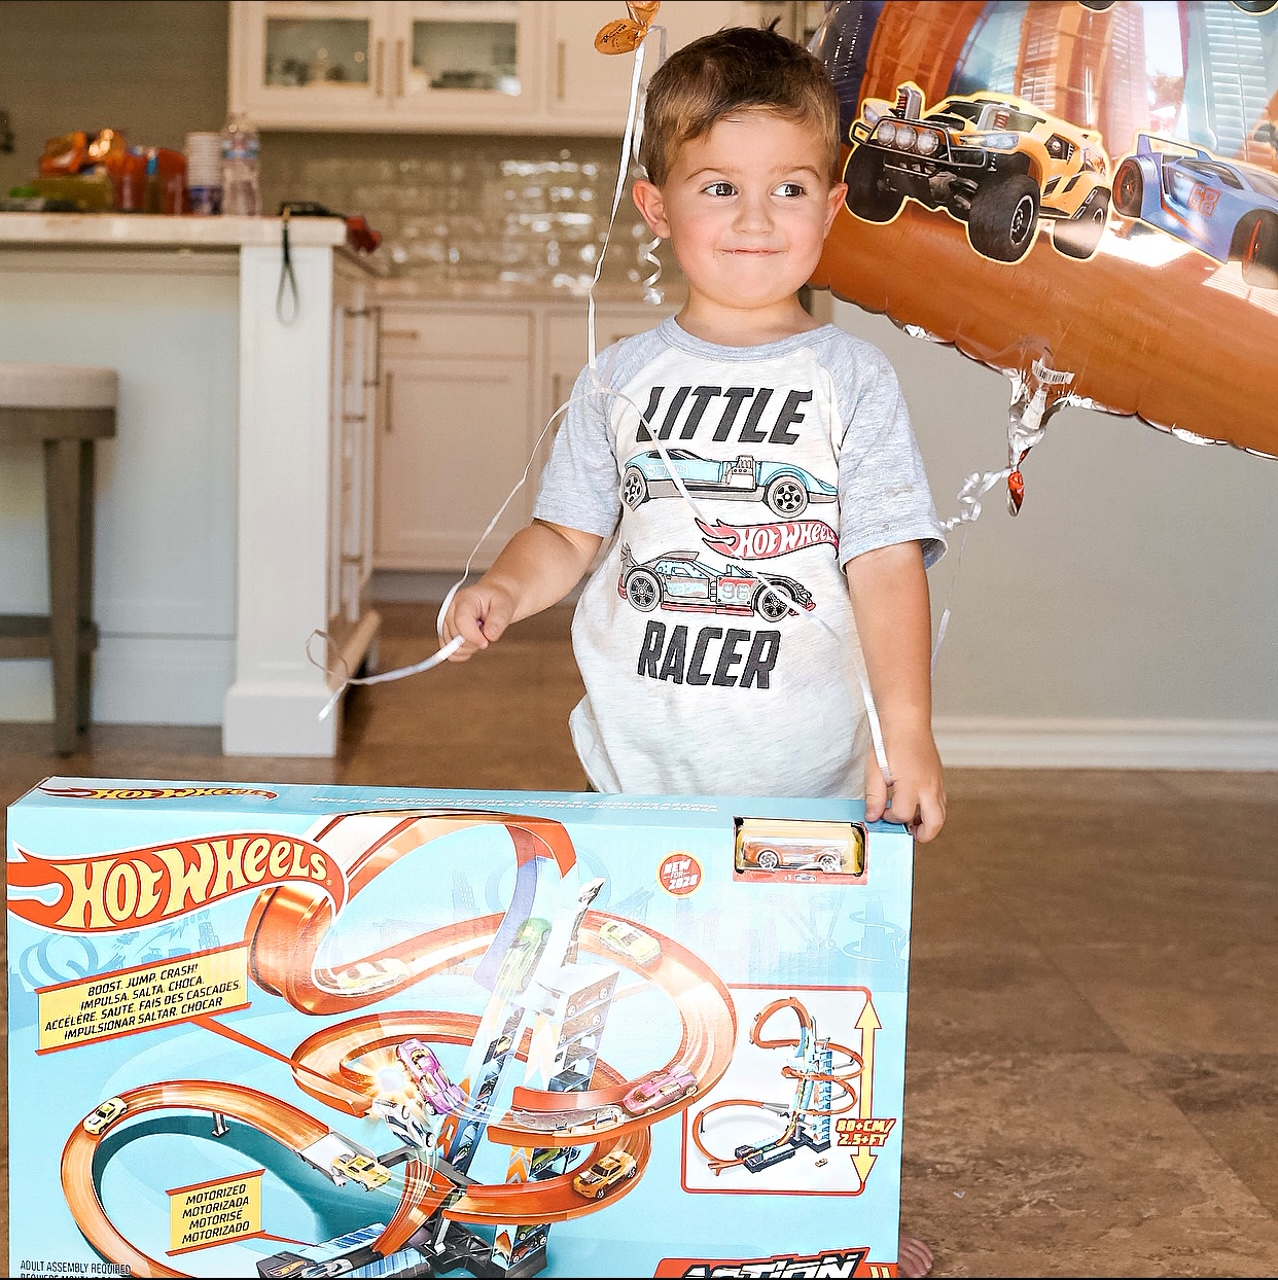 Jake with Hot Wheels box and Little Racer shirt